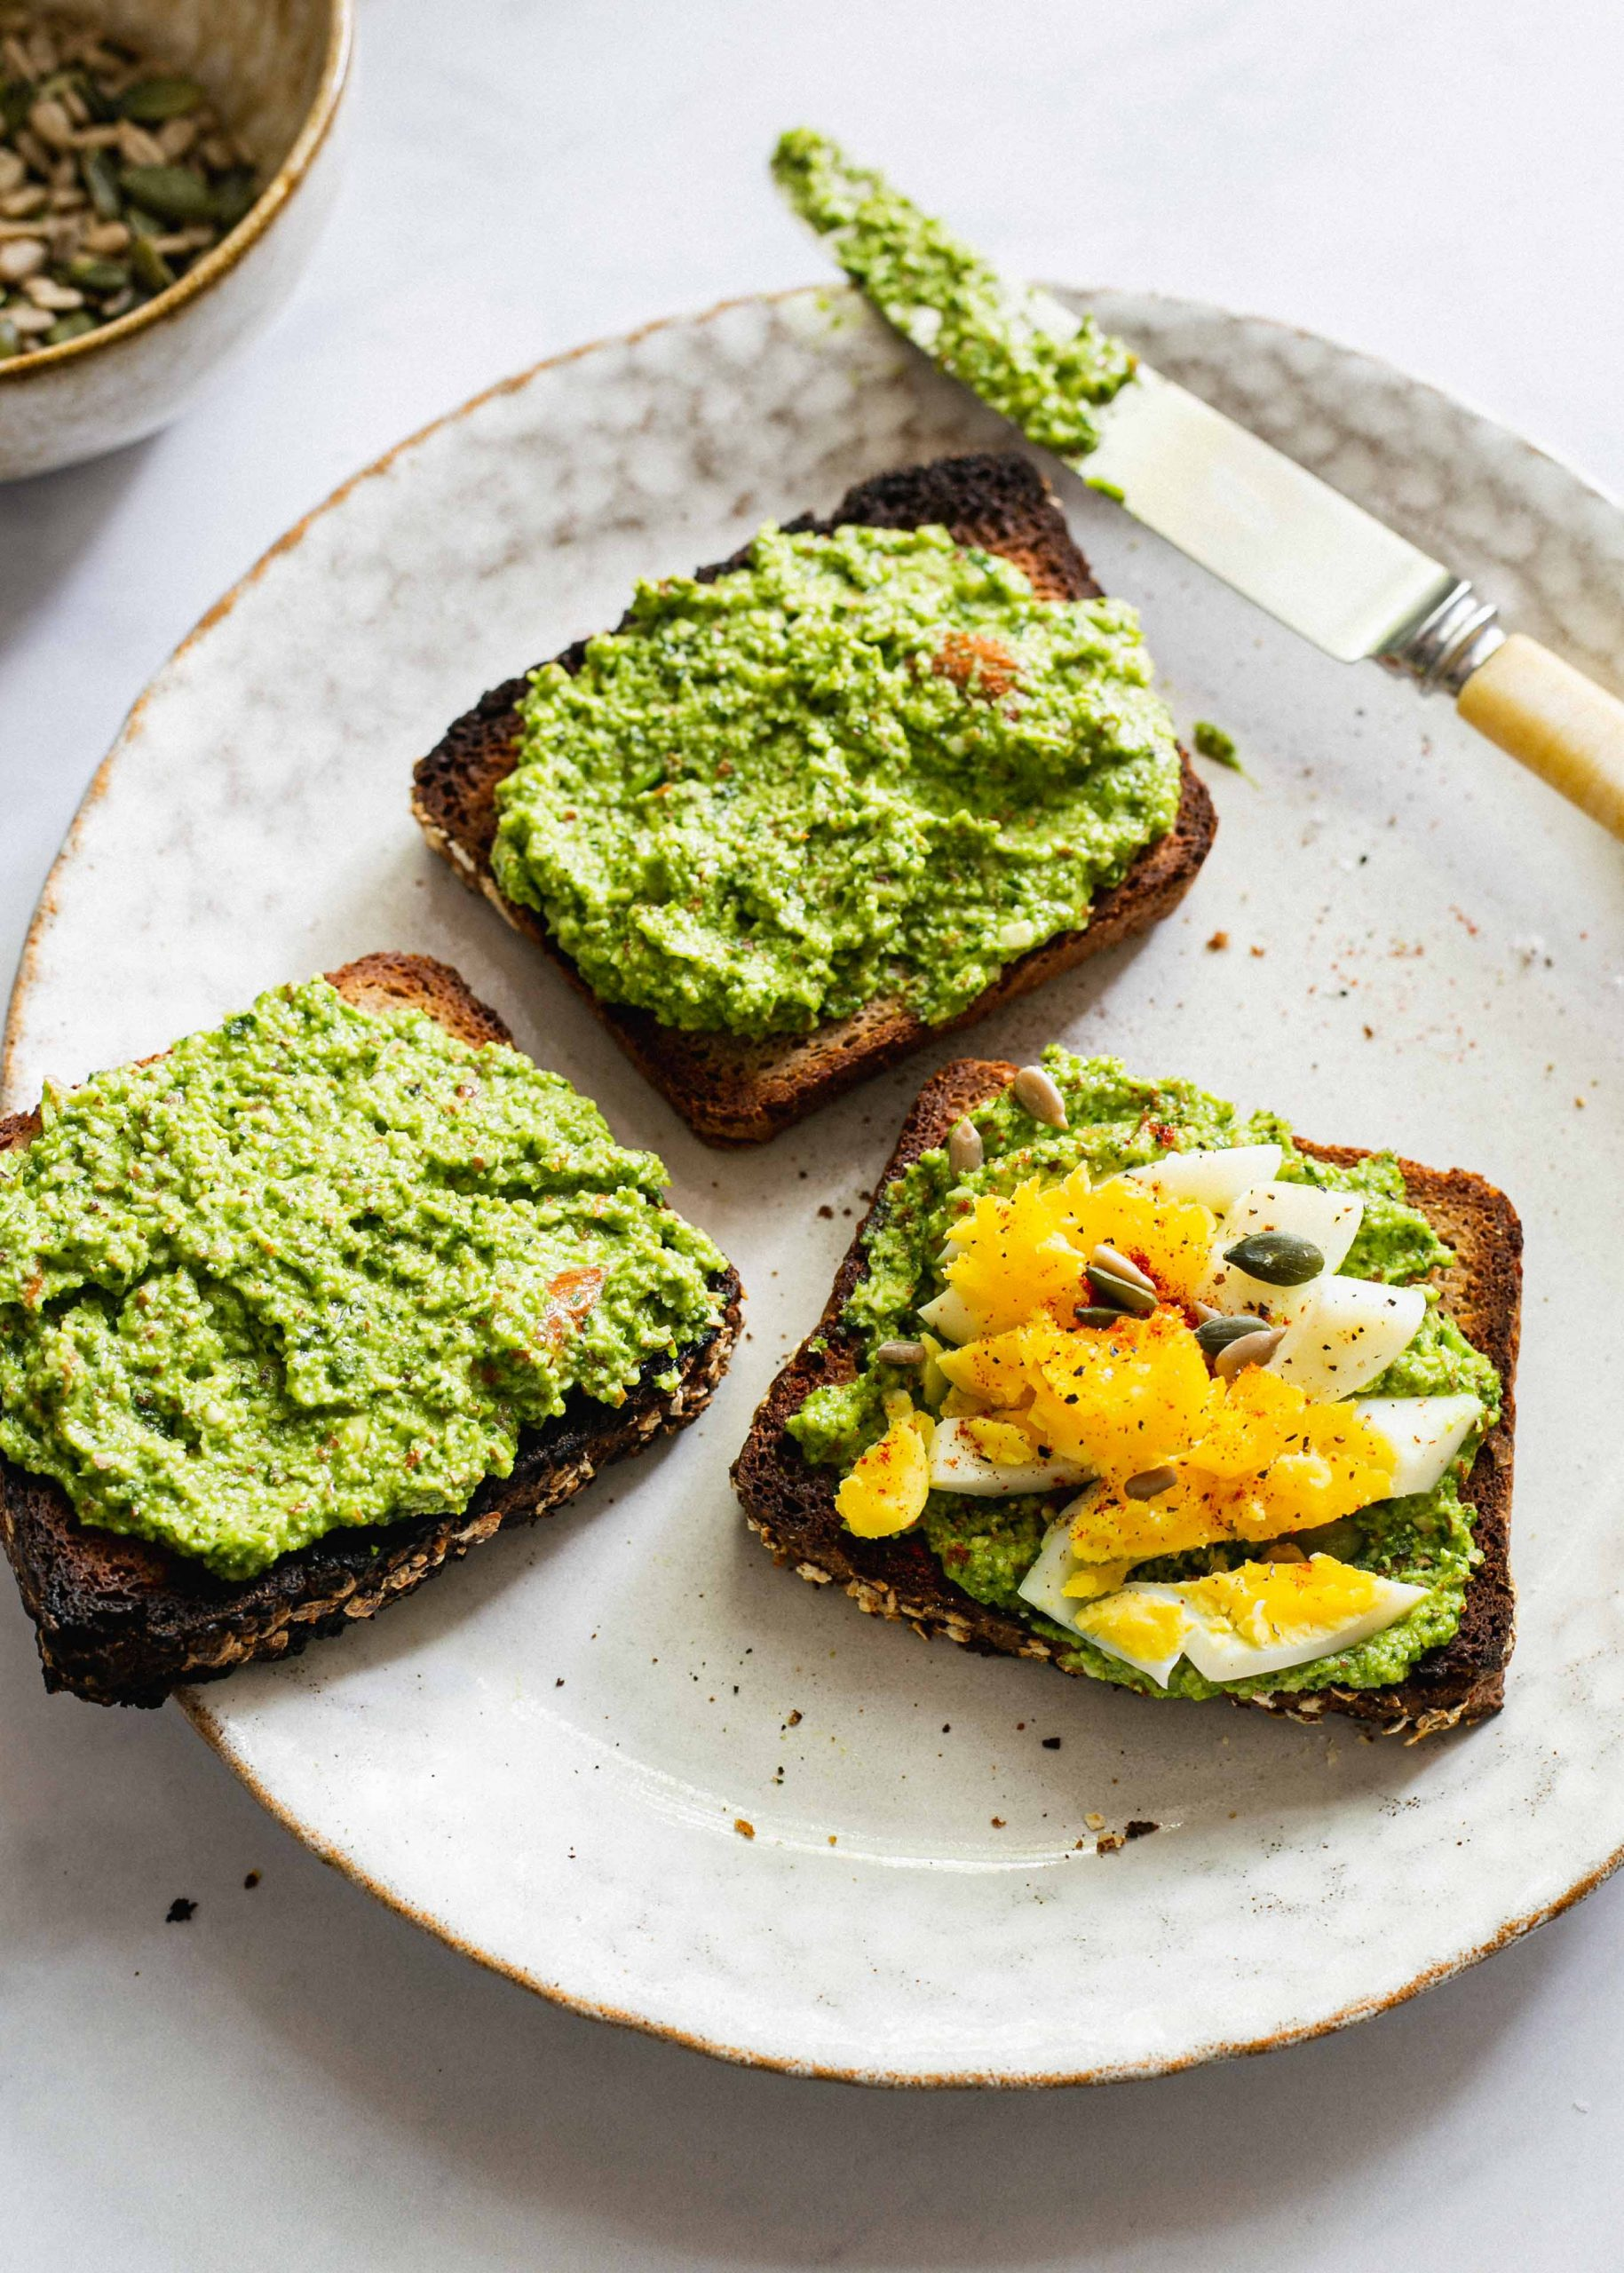 FODMAP friendly watercress pesto